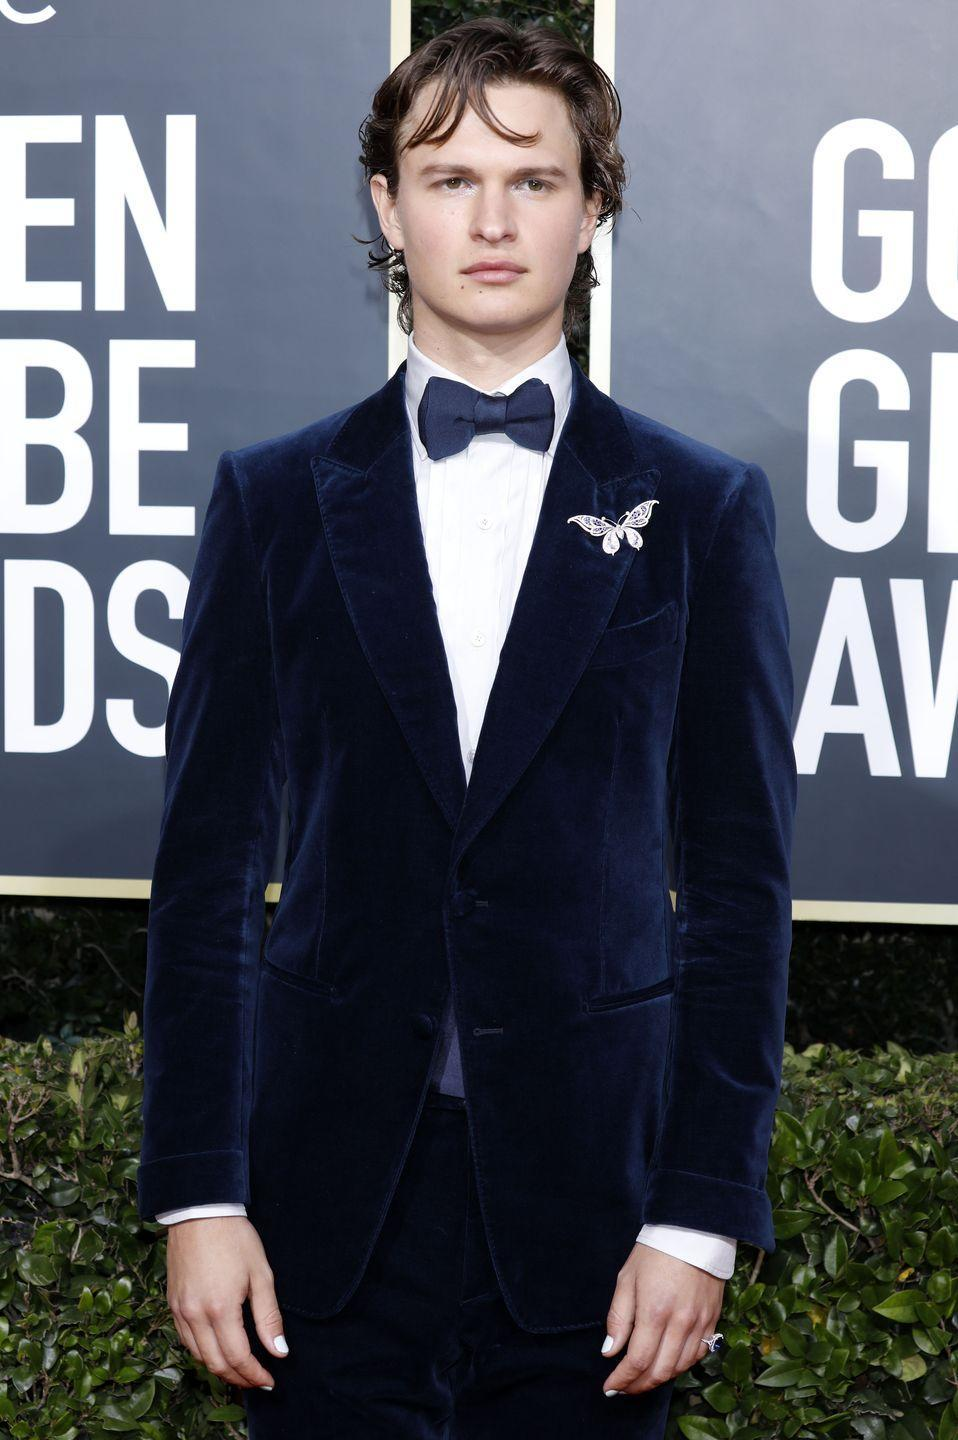 <p>Another young star in Hollywood who's grown up in front of the public eye. But his fashion choices have always been somewhat demure...</p>